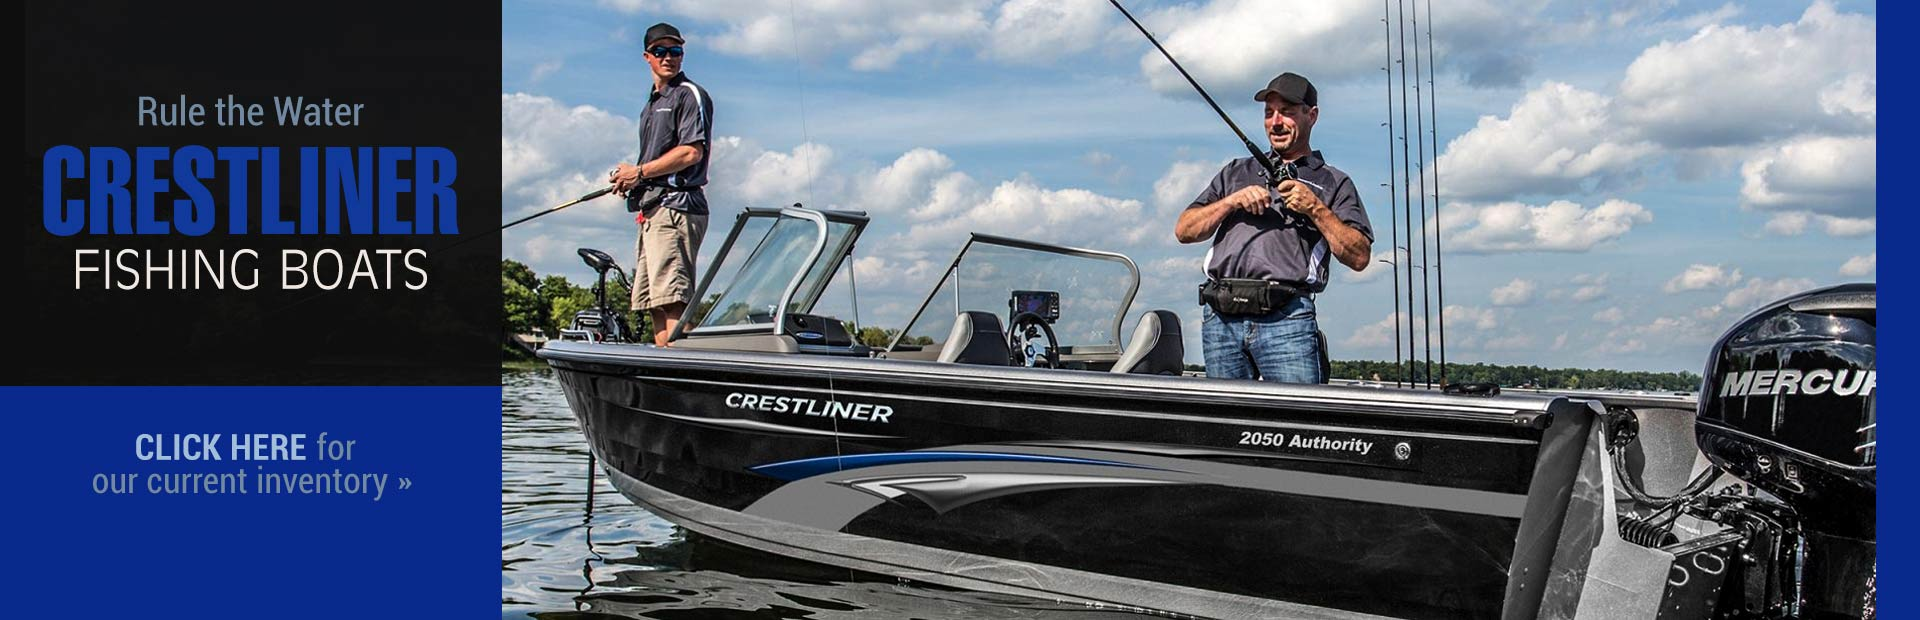 Crestliner Fishing Boats: Click here to browse the models.